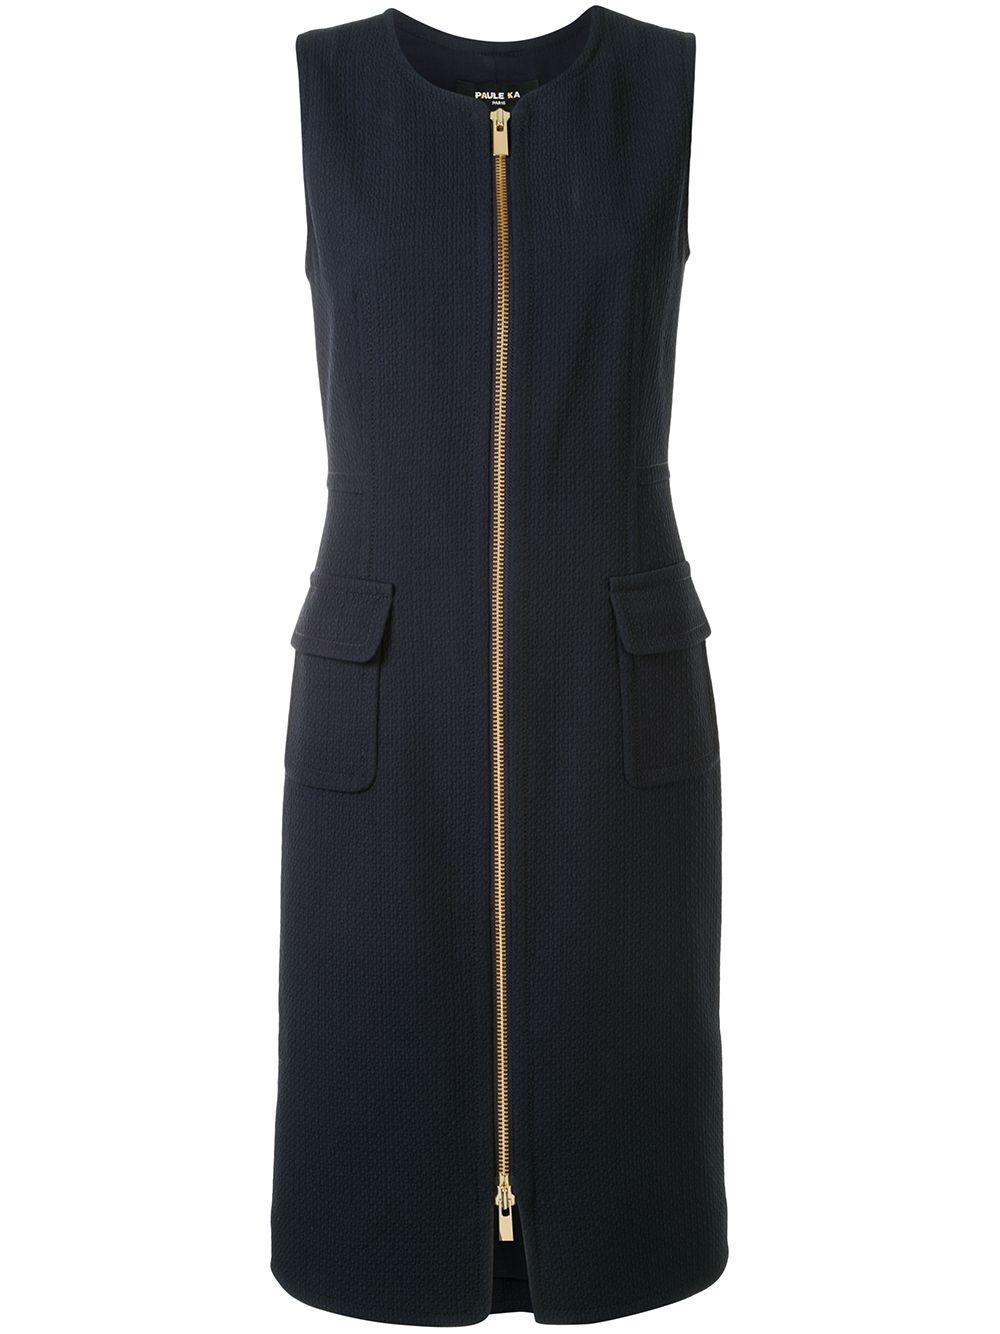 Sleeveless Zip Front Dress